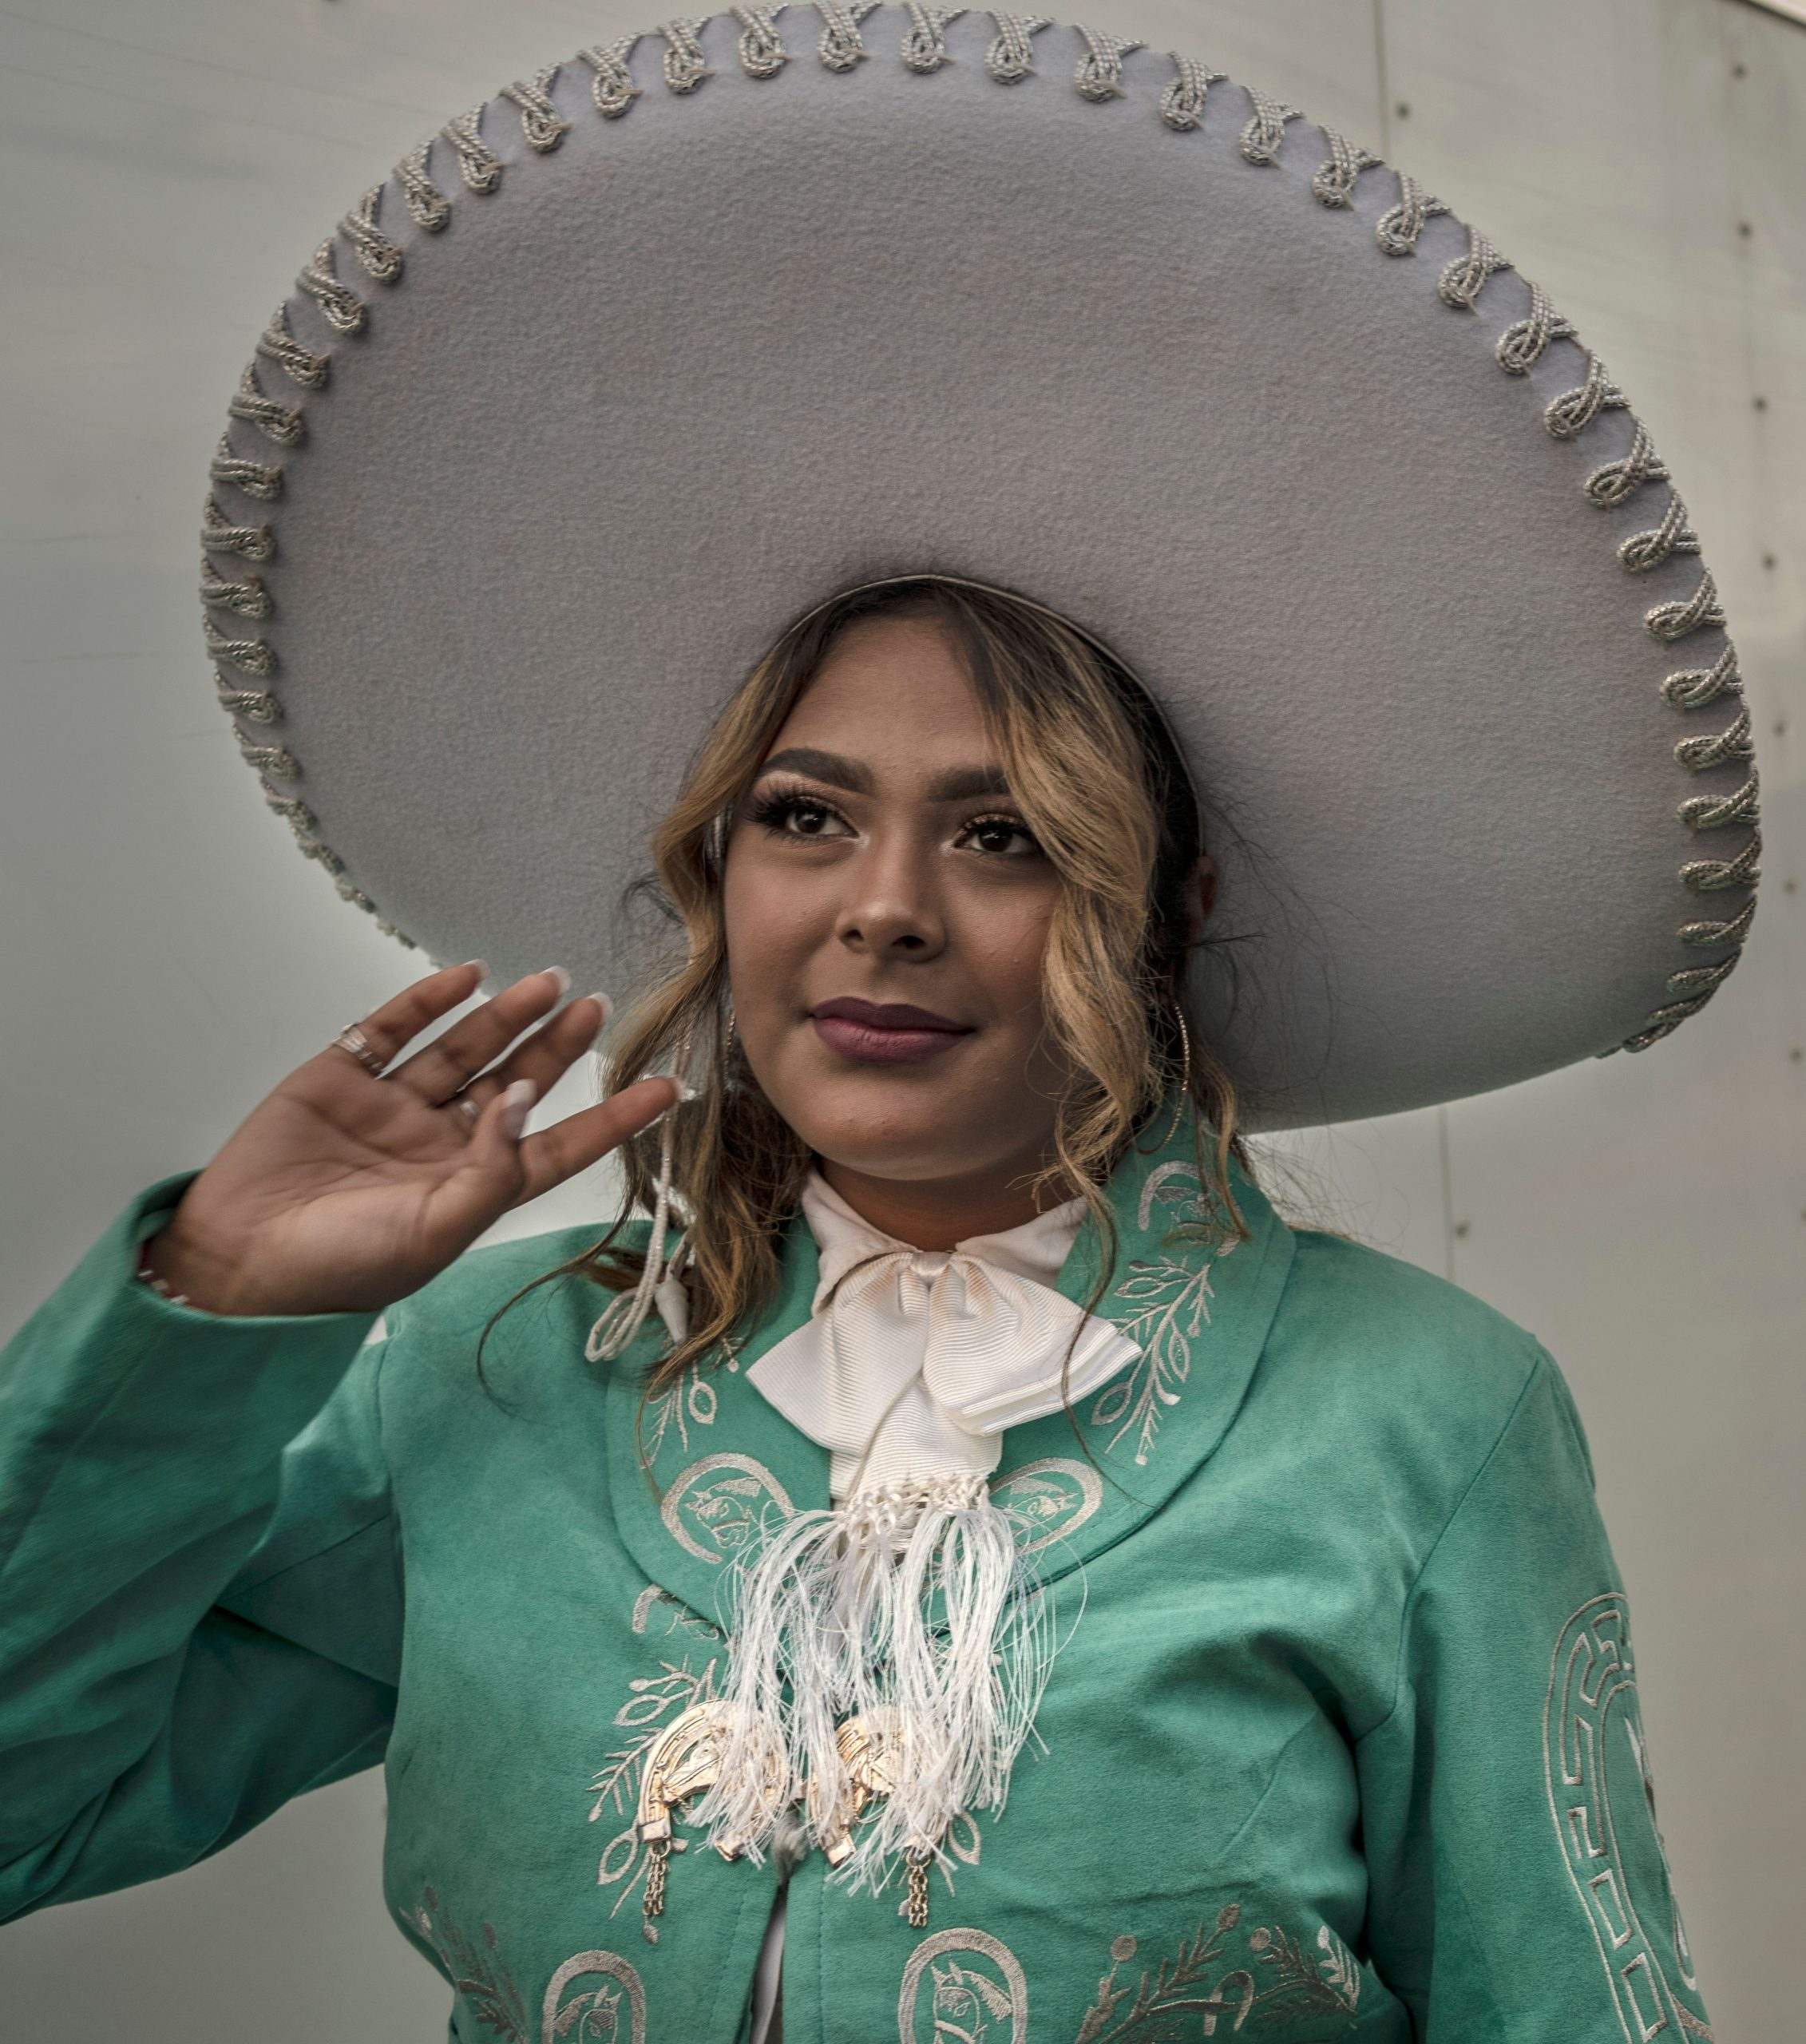 Dressed in traditional clothing, singer Elena Jimenez gets ready to perform on the outdoor stage at Plaza Mariachi. (Photo: John Partipilo)